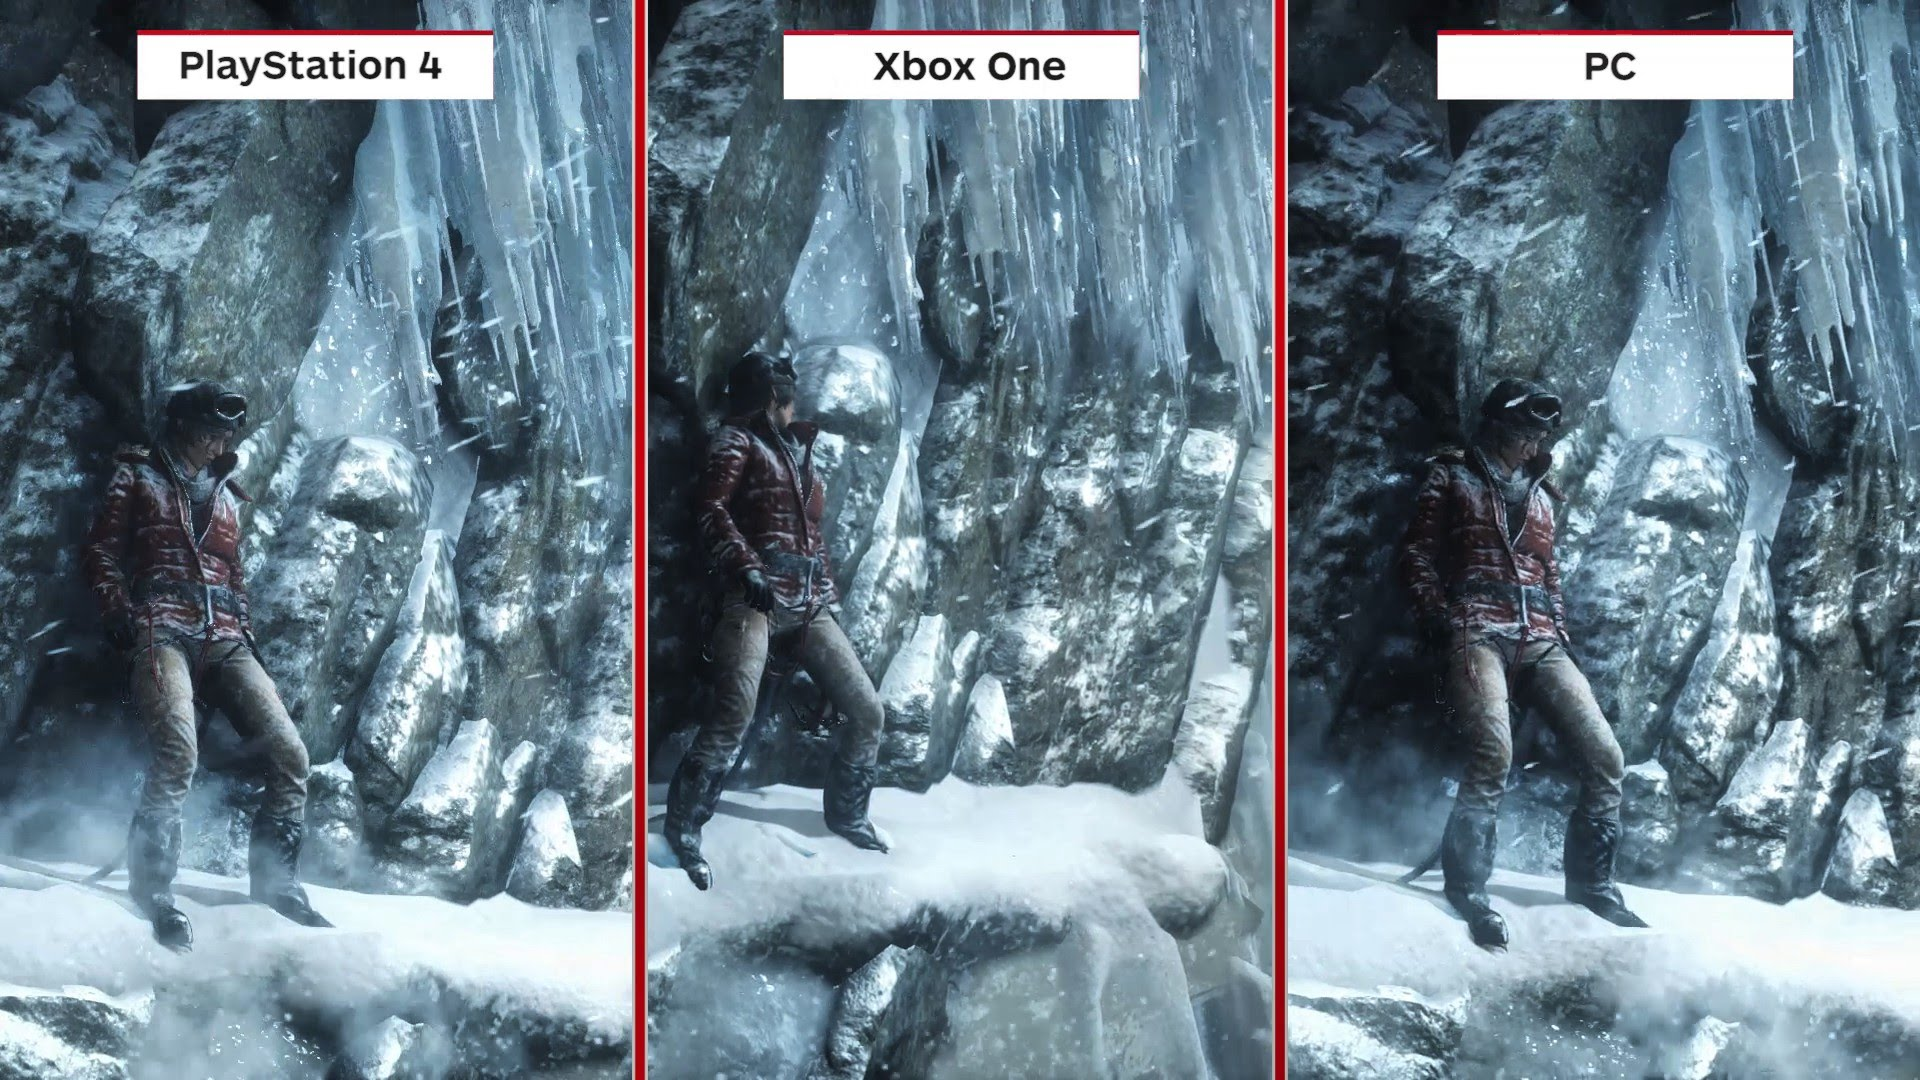 Rise Of The Tomb Raider Playstation 4 Xbox One Sony Ps4 1080p Anti Aliasing Texture Filtering Pixel Blur